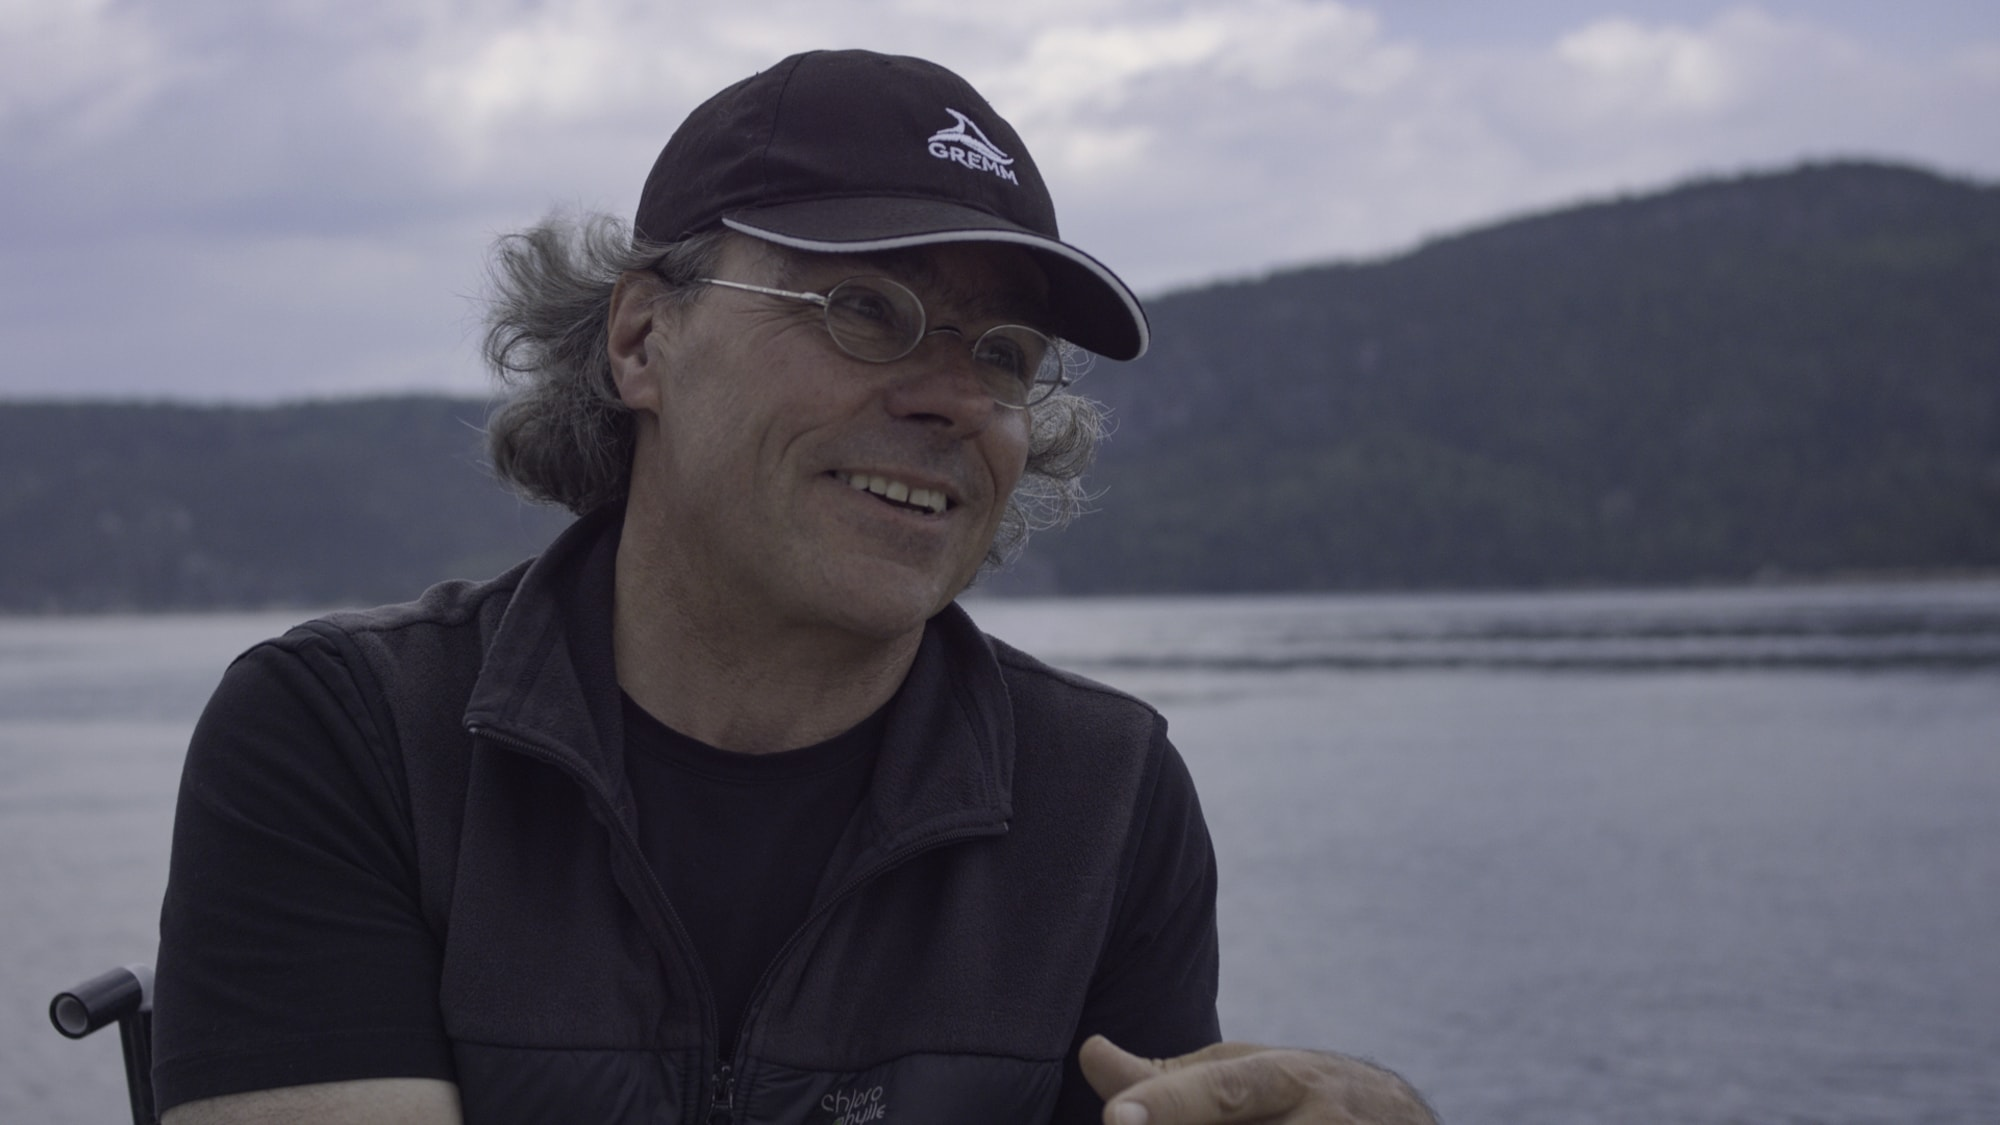 Biologist Robert Michaud has devoted his career to studying the beluga whales of Quebec's St. Lawrence River. (National Geographic for Disney+/Ben Hamilton)